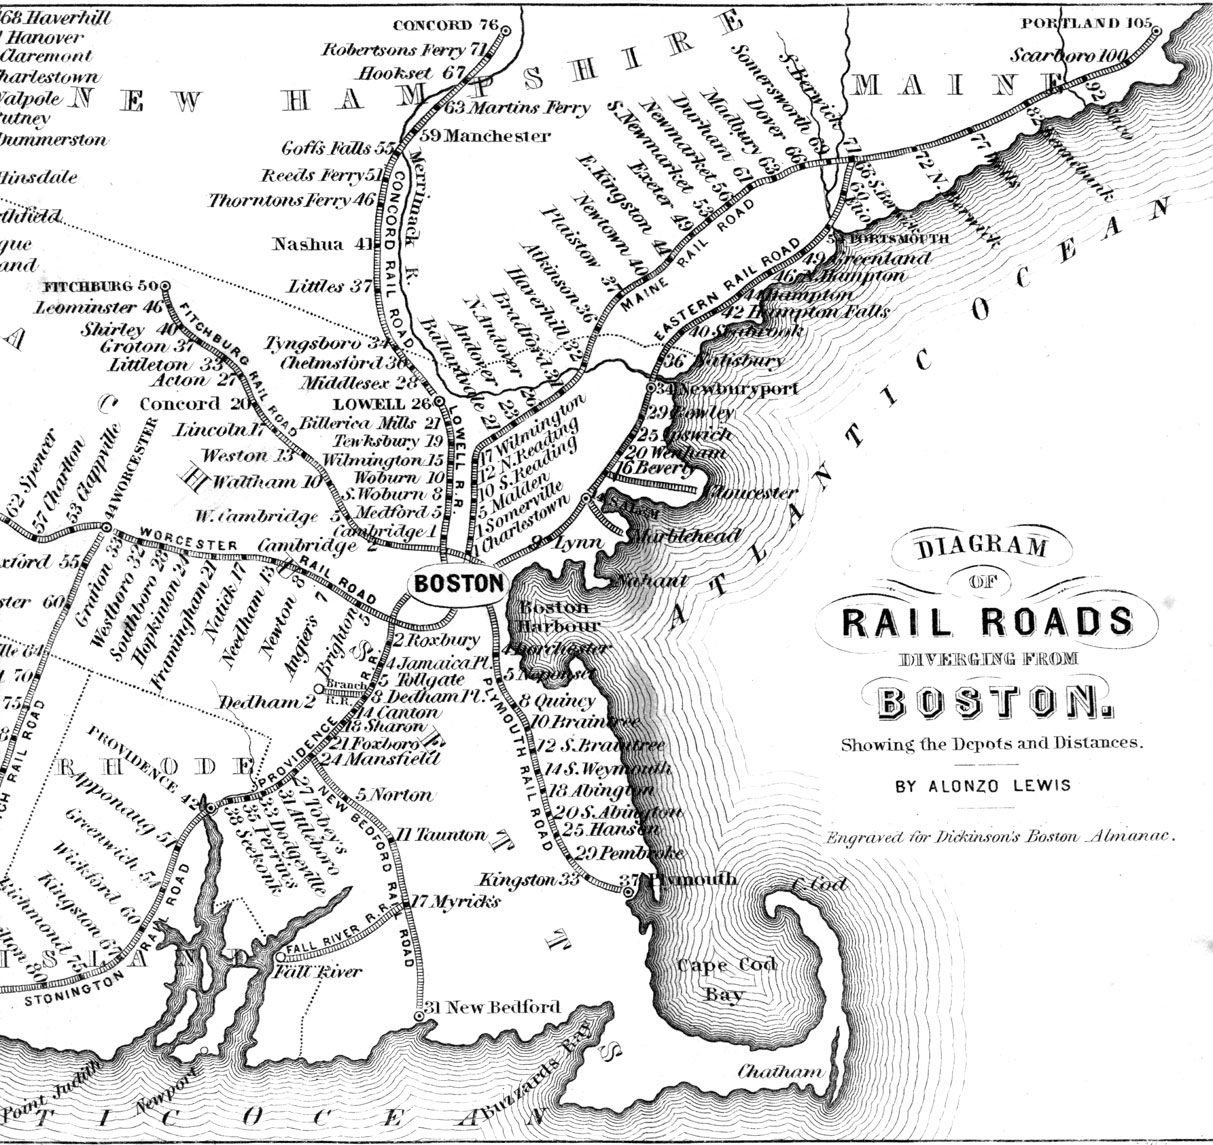 A historic map of southeastern New England is shown. Cape Cod and the Atlantic seashore are prominent. New Hampshire, Massachusetts, Maine, and Rhode Island's borders are noted. Large rivers and ocean features are labeled. The word Boston is written in bold script and circled in the appropriate place. Extending out from Boston are seven lines like spokes of a wheel. Each line has many depots labeled along it. The lines extend as far north as Concord, NH, and Portland, ME; as far west as to travel off the map; and as far south as New Bedford, MA. The title of the map lies in the Atlantic Ocean, and reads